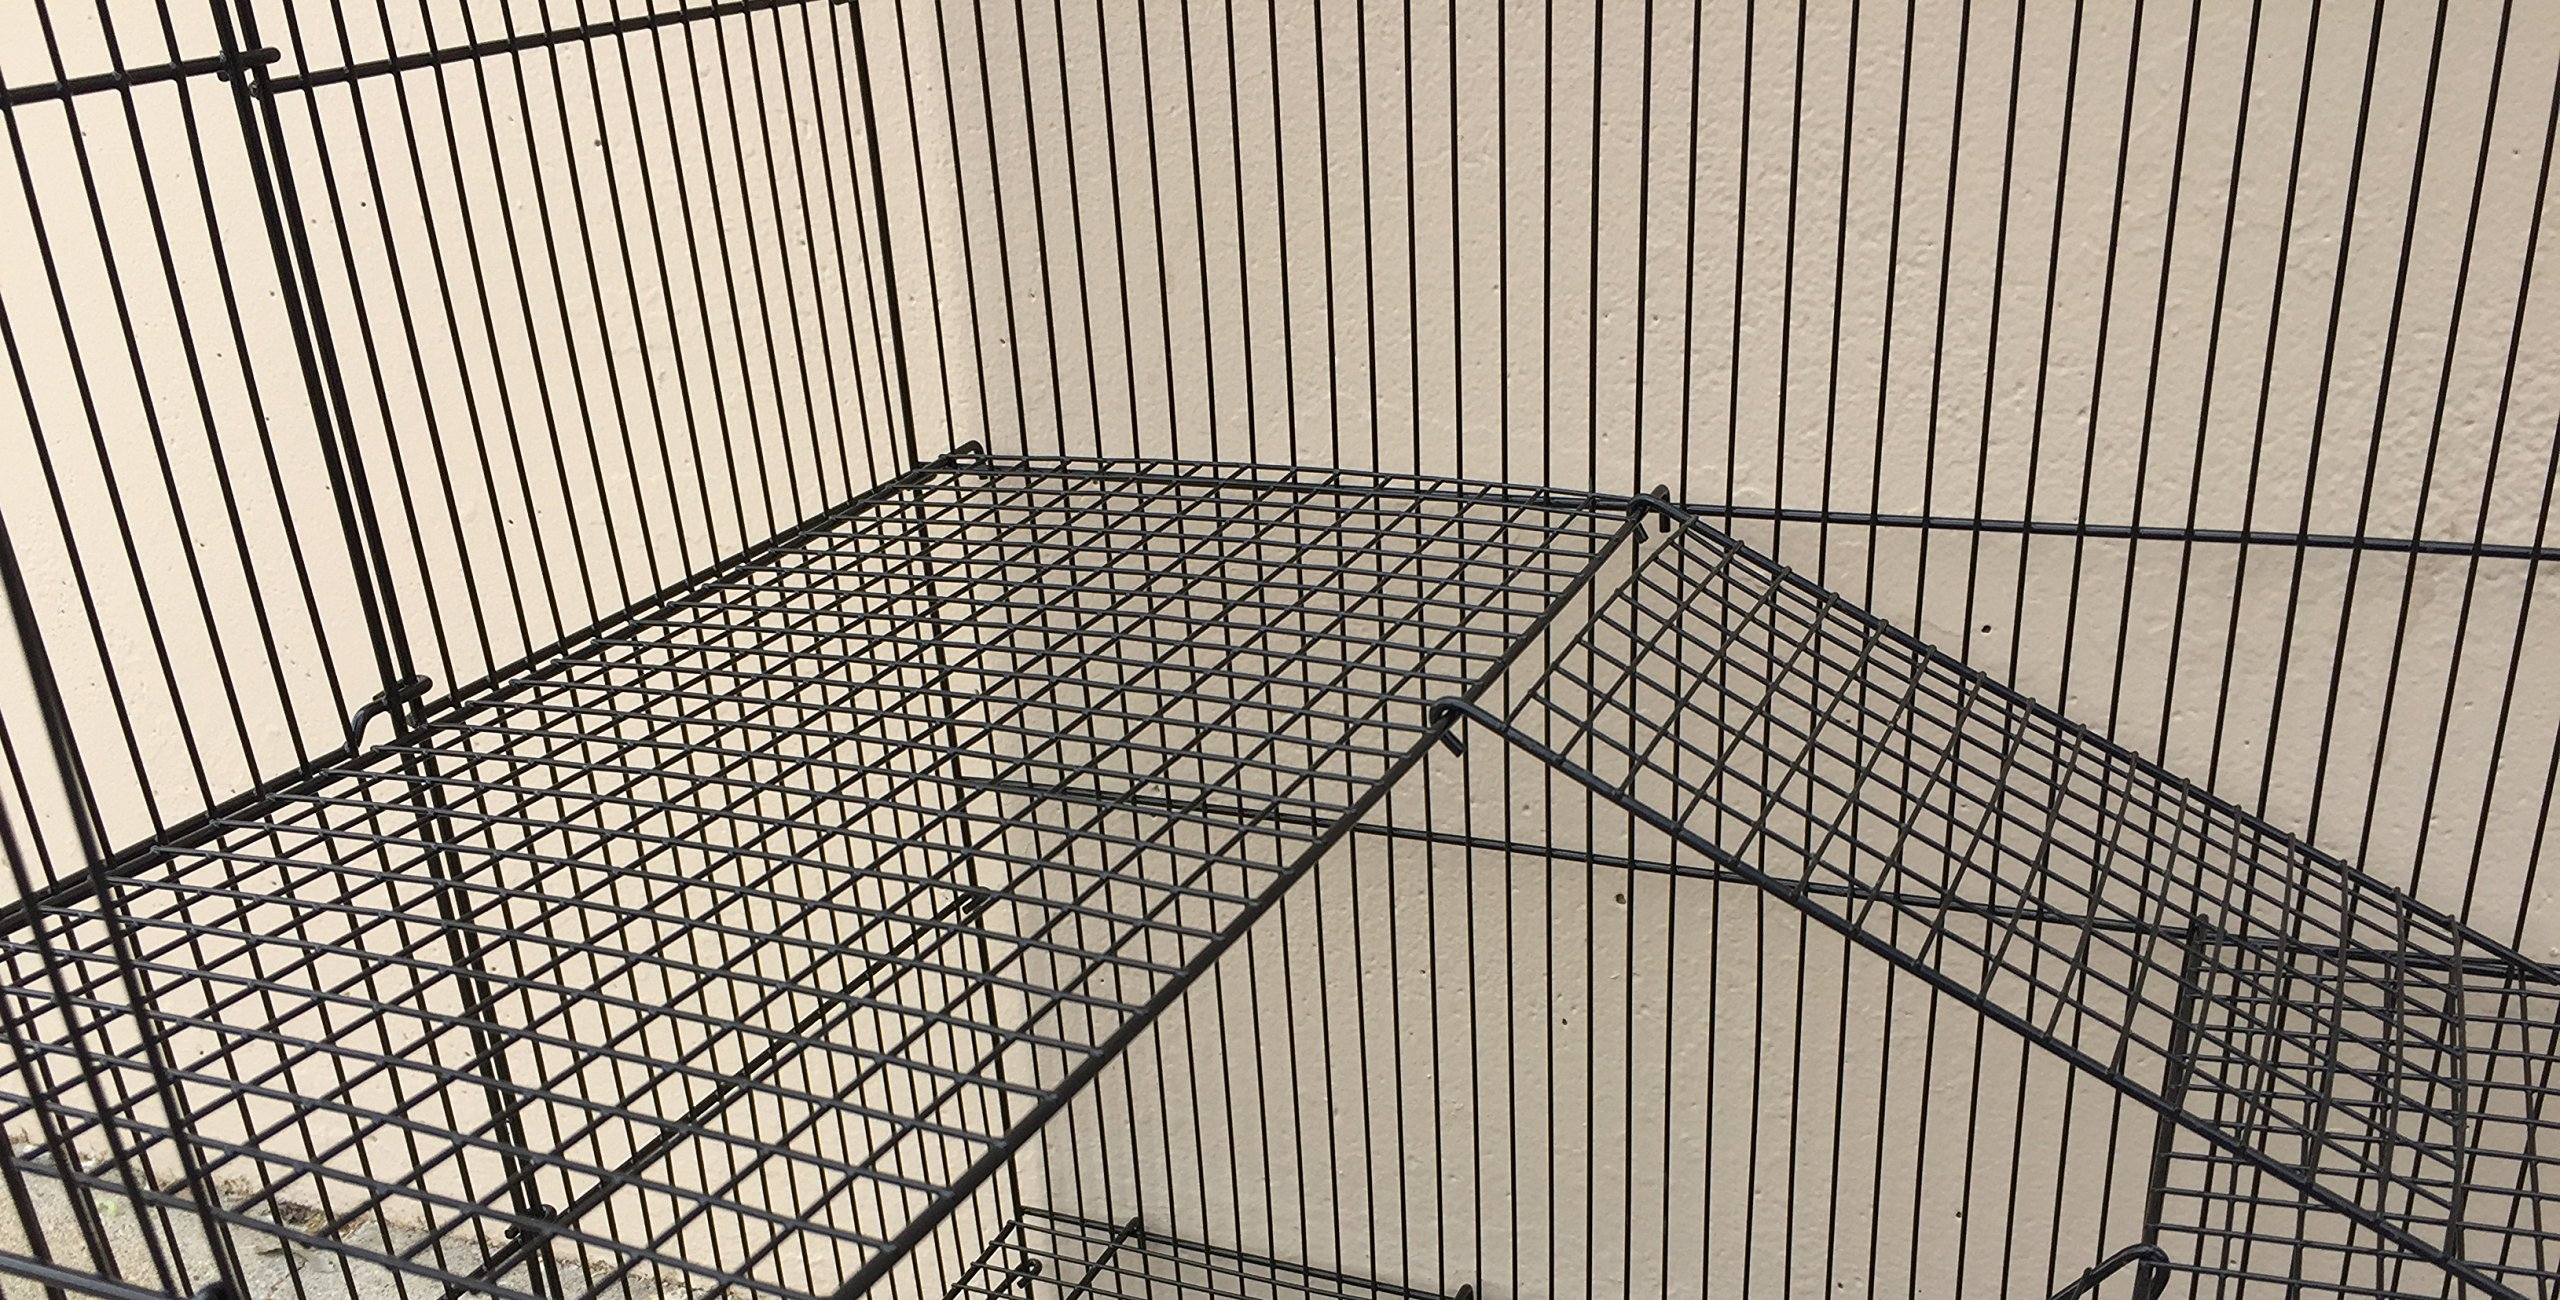 Two Size, 3 Level Ferret Chinchilla Sugar Glider Rats Animal Cage With 1/2 Inch Cross Shelves and Ladders by Mcage (Image #4)